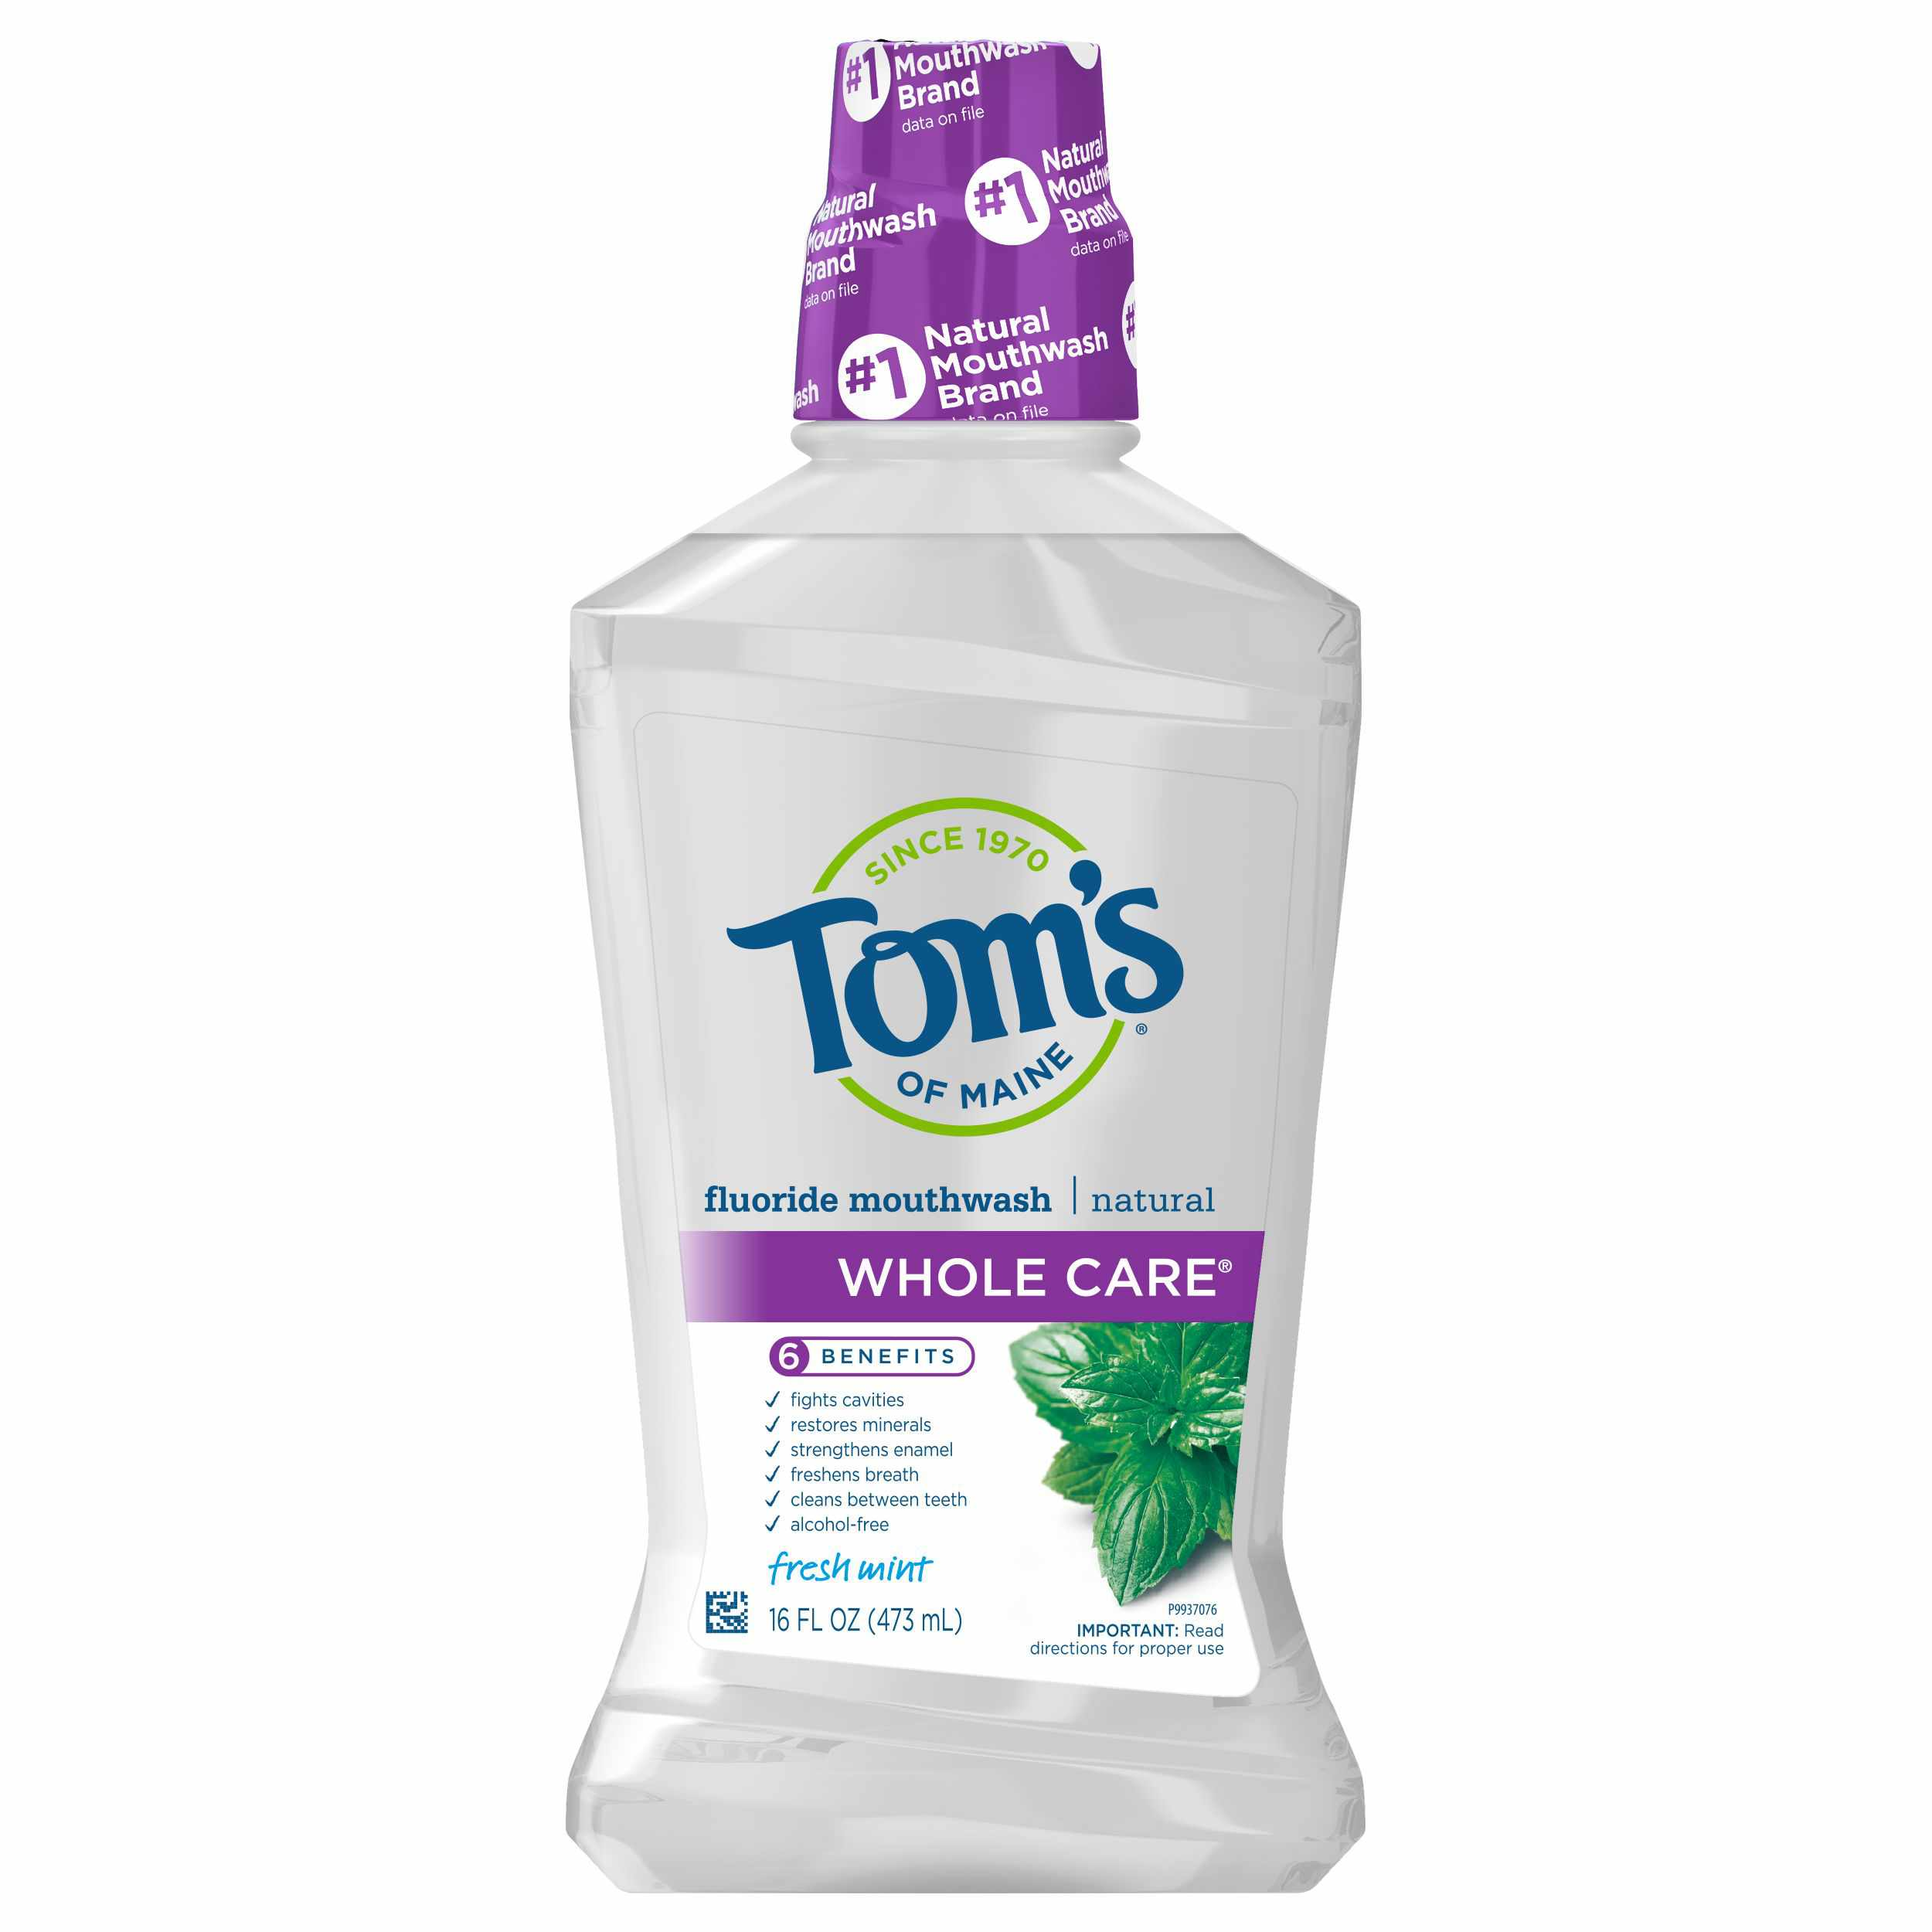 Tom's of Maine Natural Fluoride Mouthwash